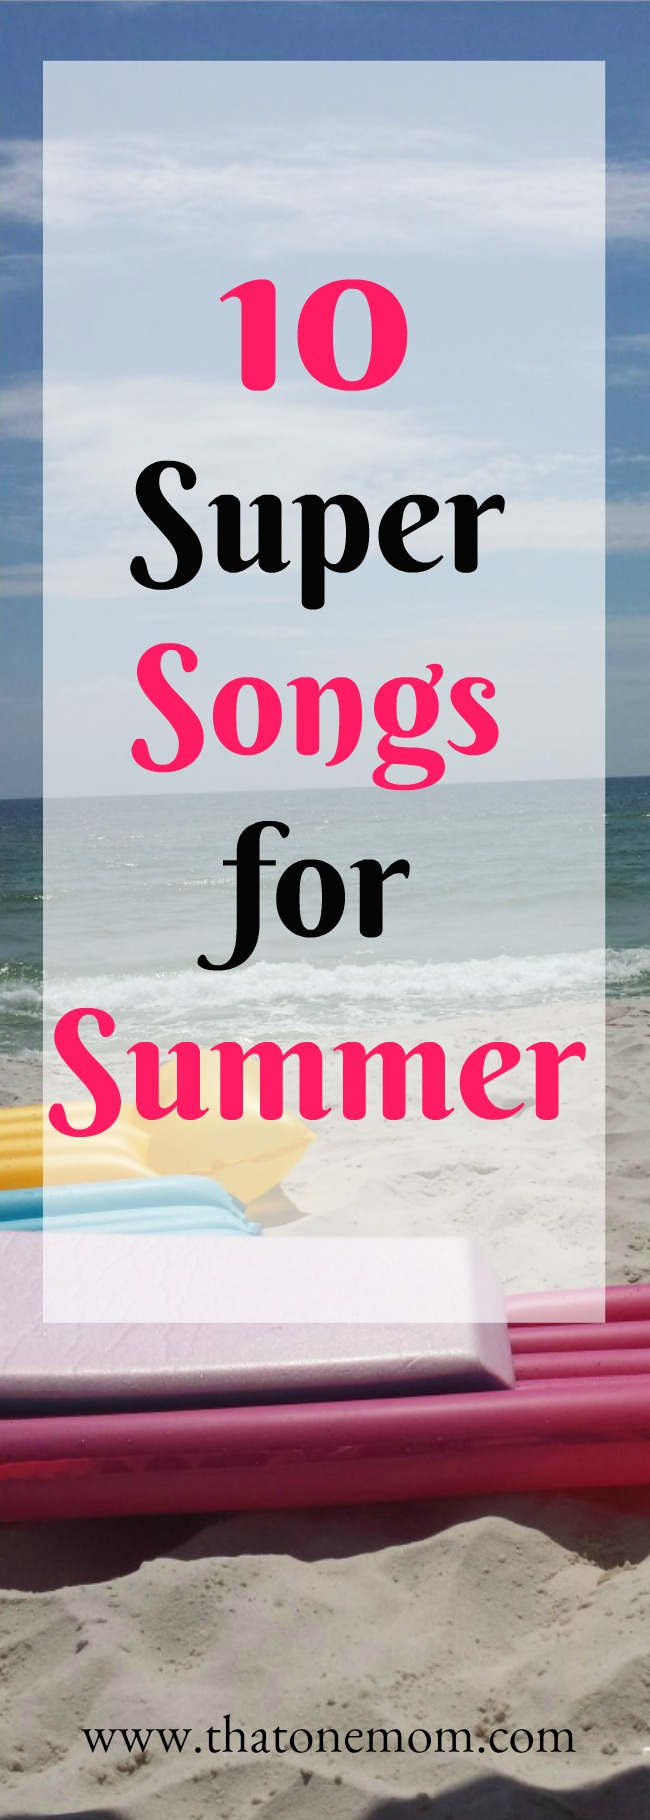 10 Super Songs for Summer www.thatonemom.com